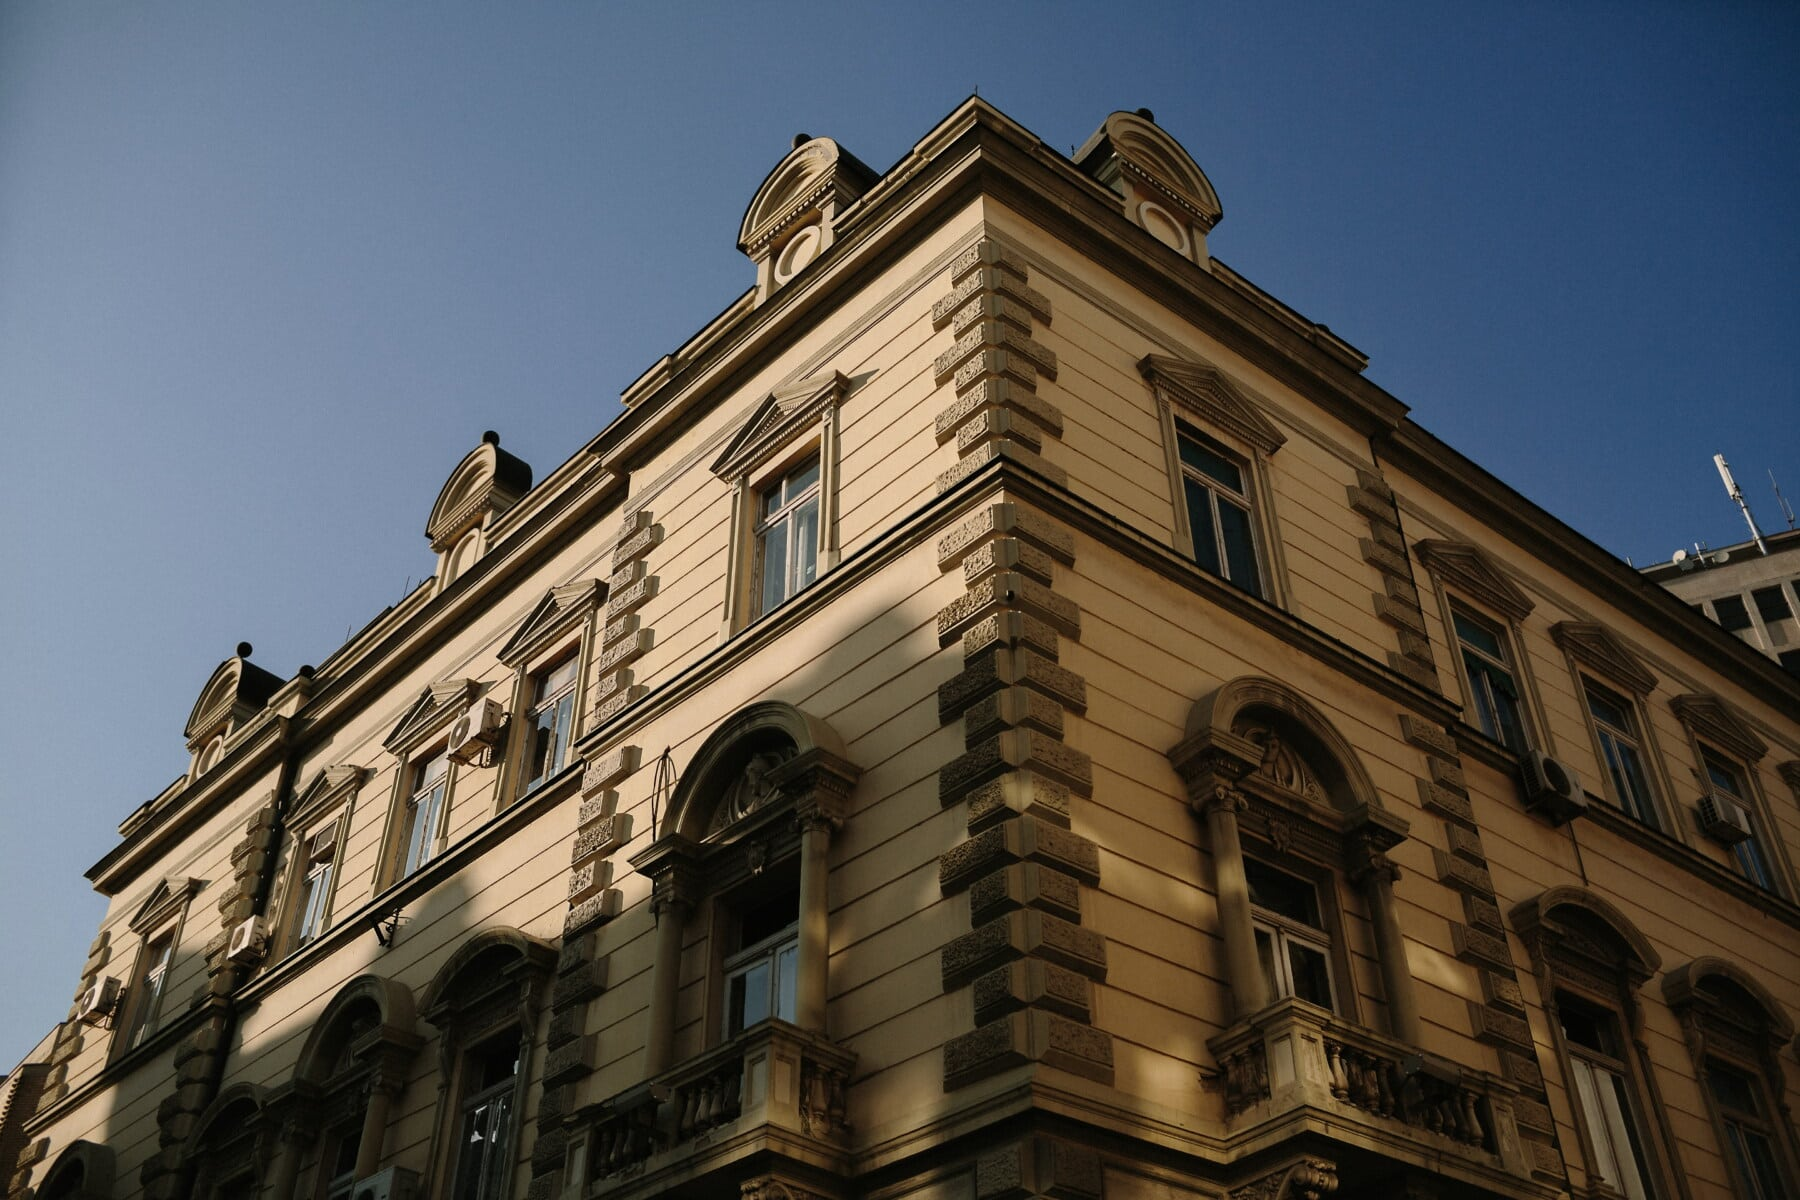 building, city hall, corner, style, architectural style, baroque, street, architecture, city, cathedral